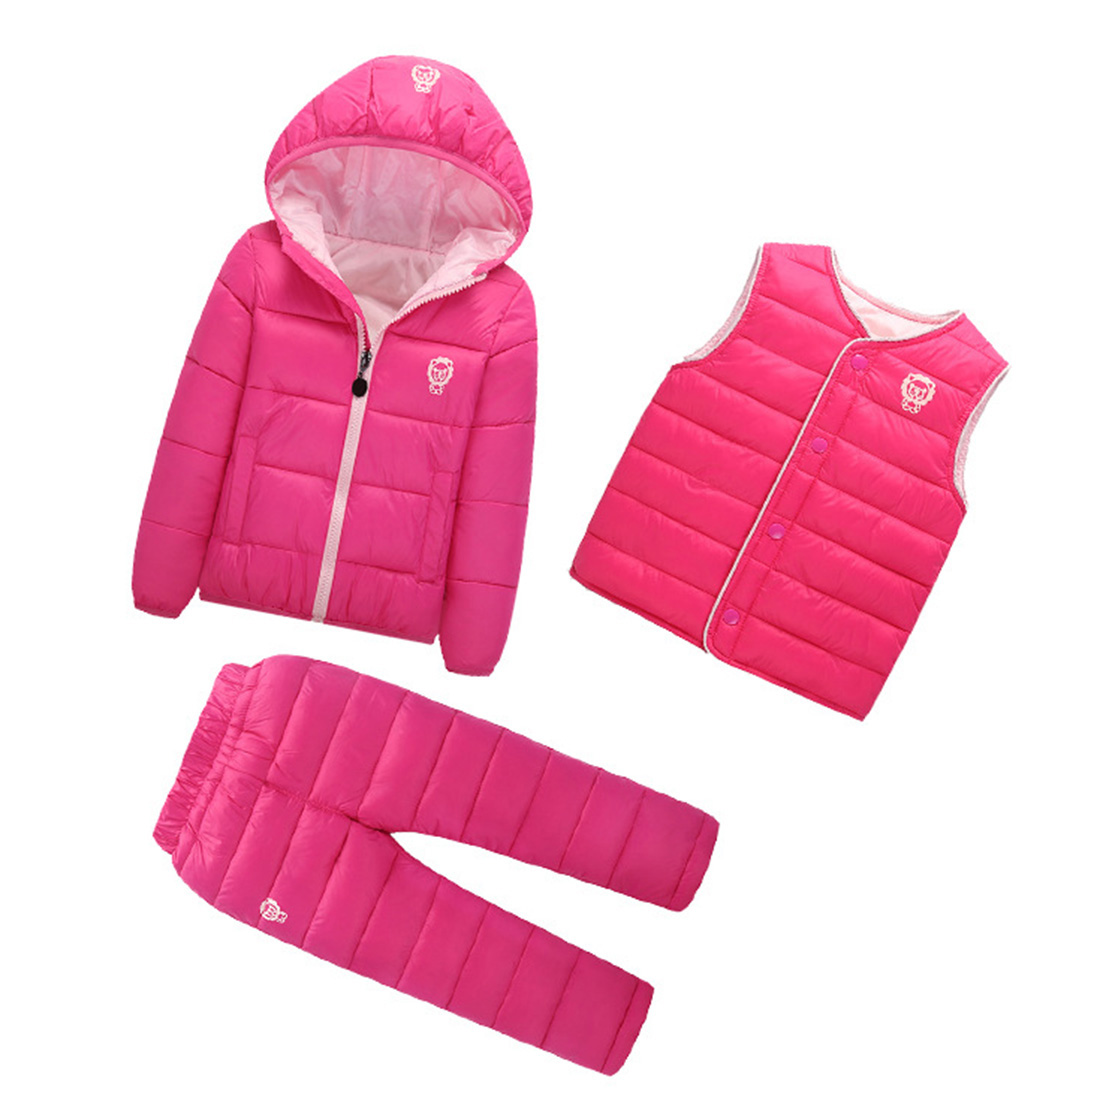 3-Pcs-Lot-Winter-Baby-Girls-Boys-Clothes-Sets-Children-Down-Cotton-padded-Coat-6-Colors-6-Size-2